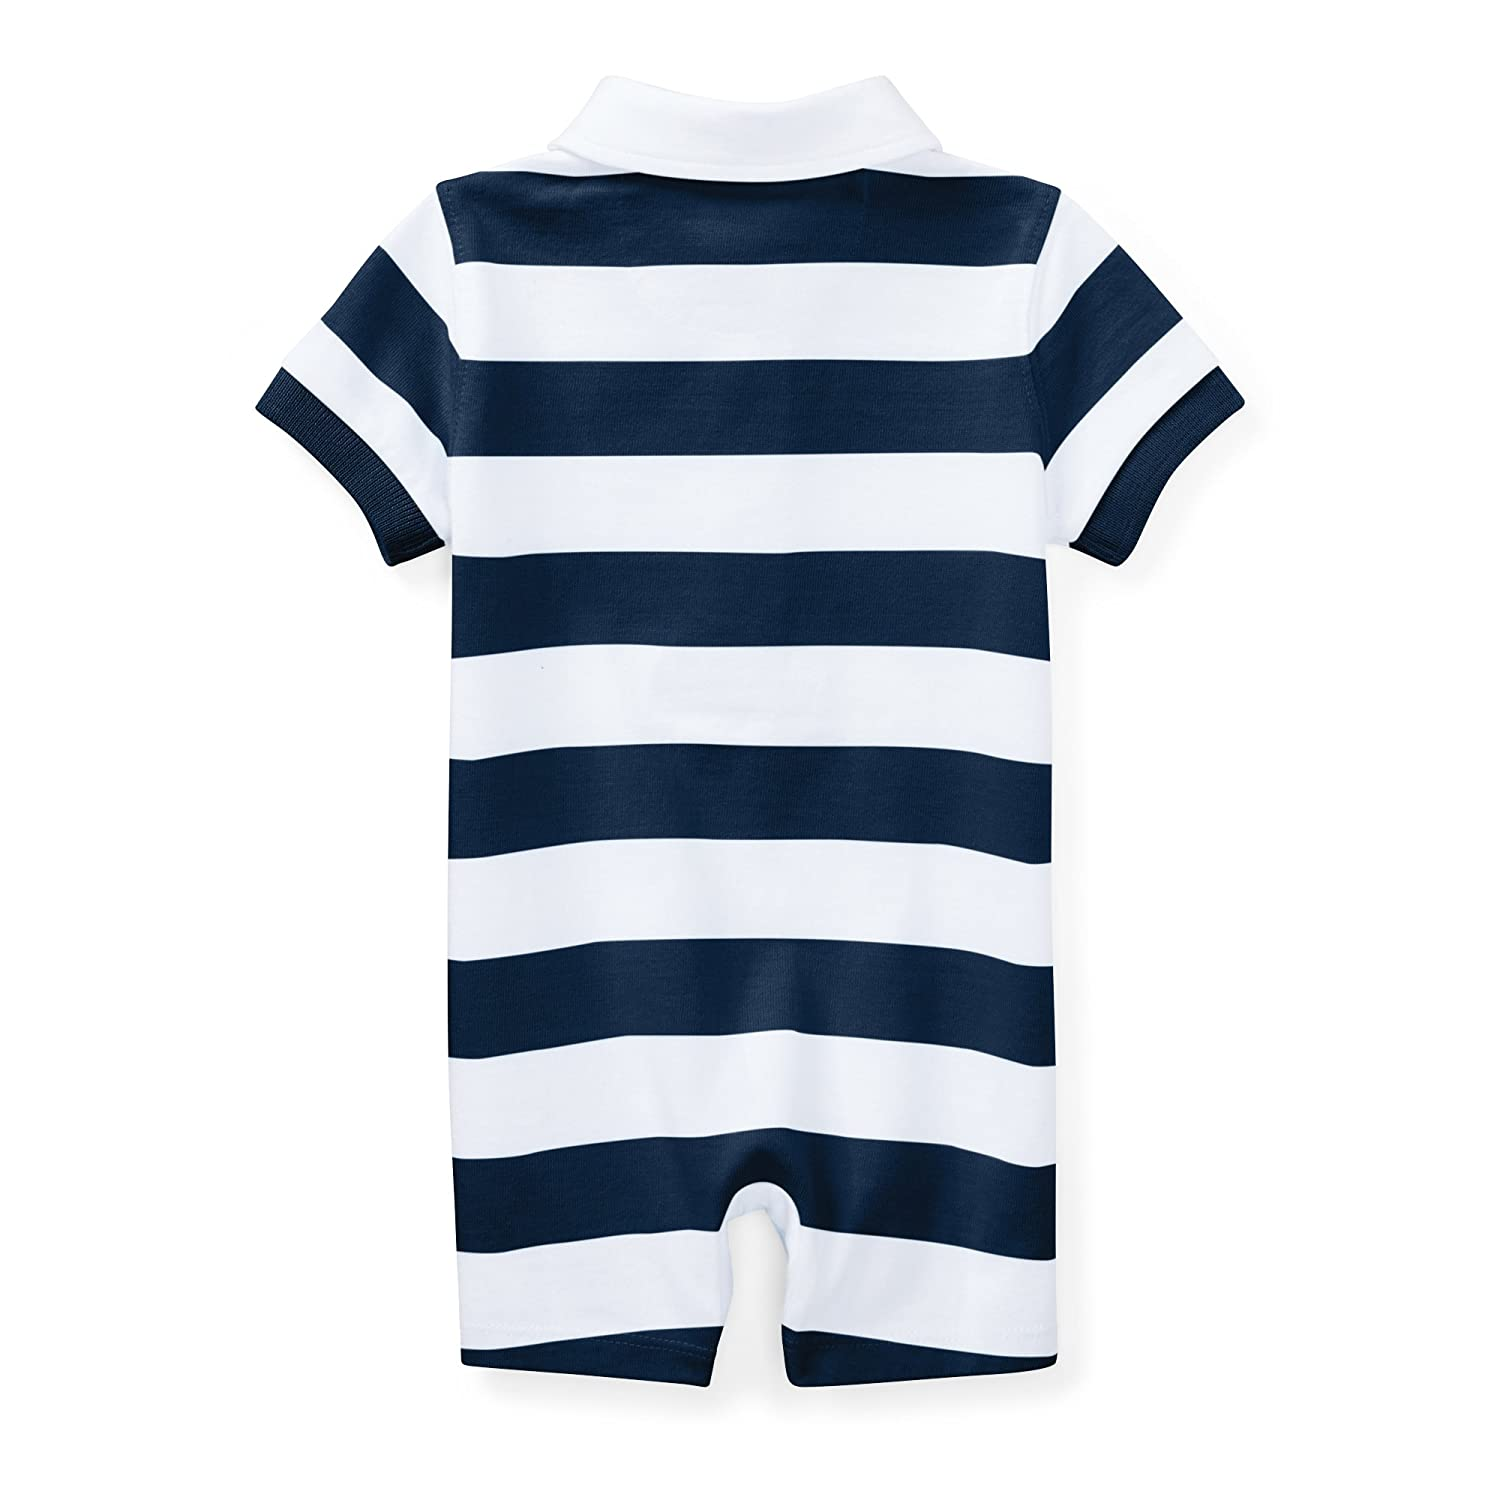 b9a829d5 Amazon.com: RALPH LAUREN Baby Boys Striped Cotton Rugby Shortall (24  Months, Summer Navy/White): Clothing